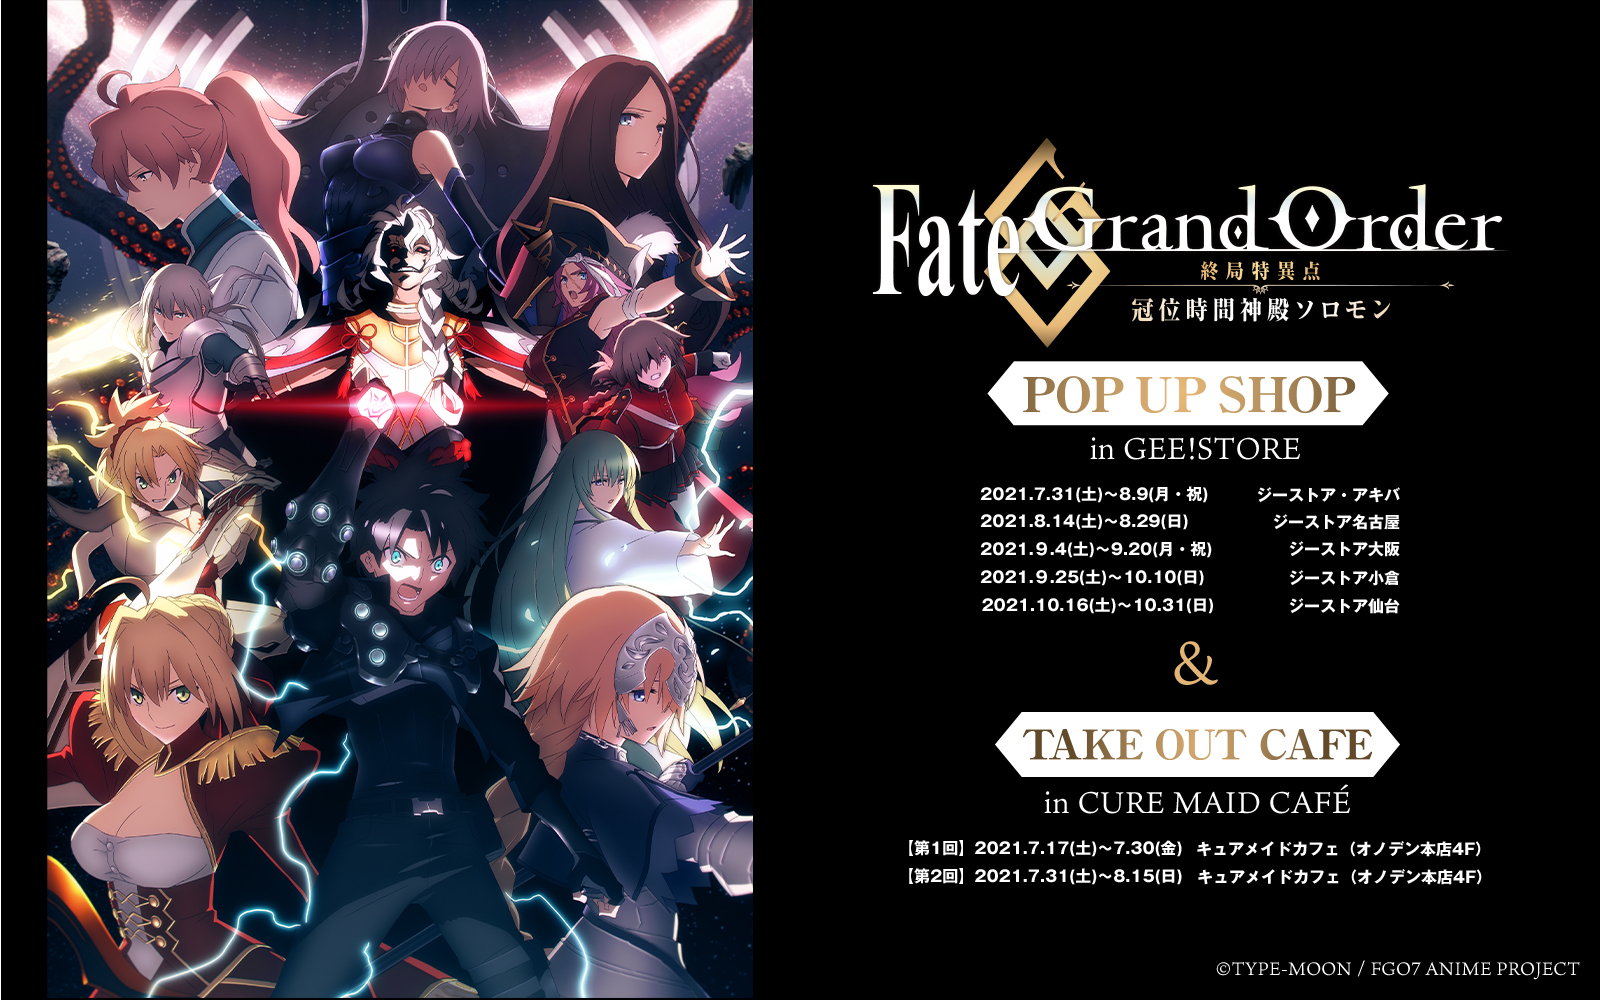 Fate/Grand Order -終局特異点 冠位時間神殿ソロモン- POP UP SHOP in GEE!STORE 開催決定!